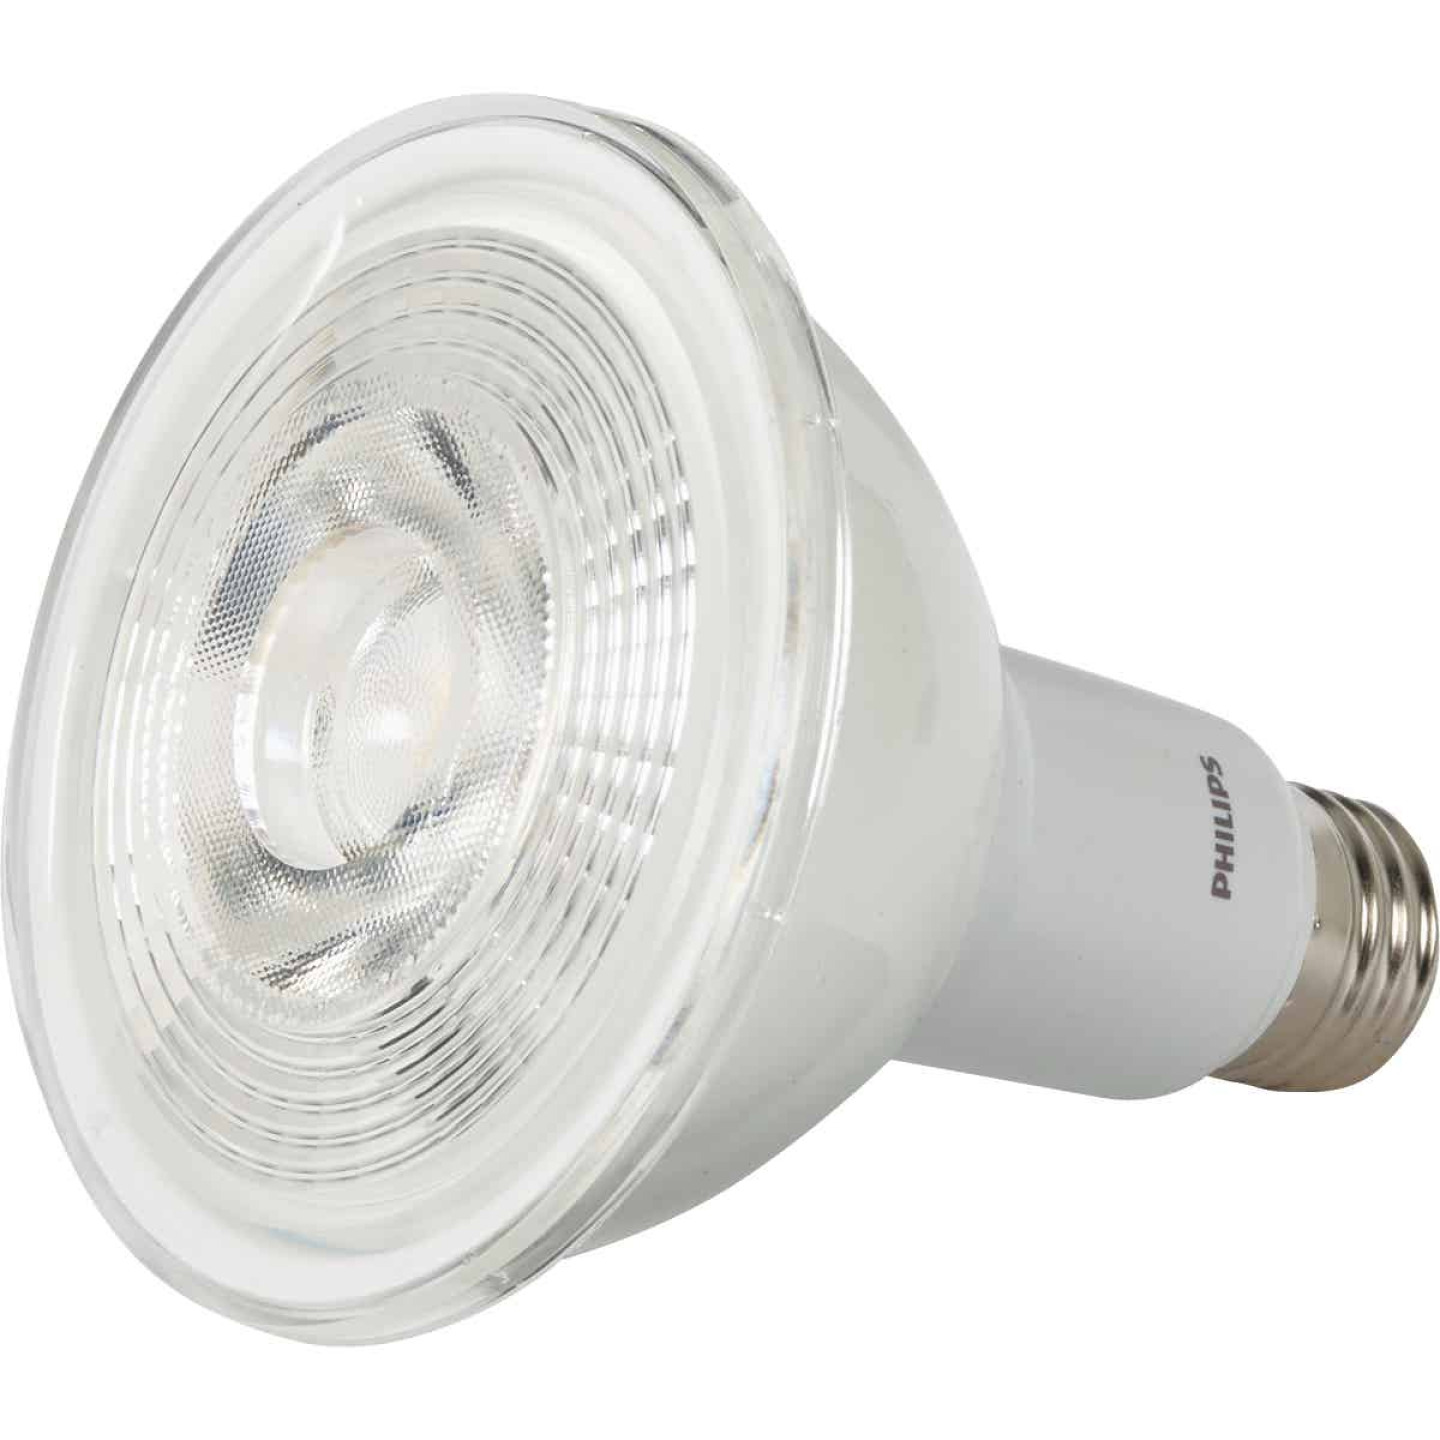 Philips 75W Equivalent Bright White PAR30 Long Neck Medium Dimmable LED Floodlight Light Bulb with Wide Beam Image 3